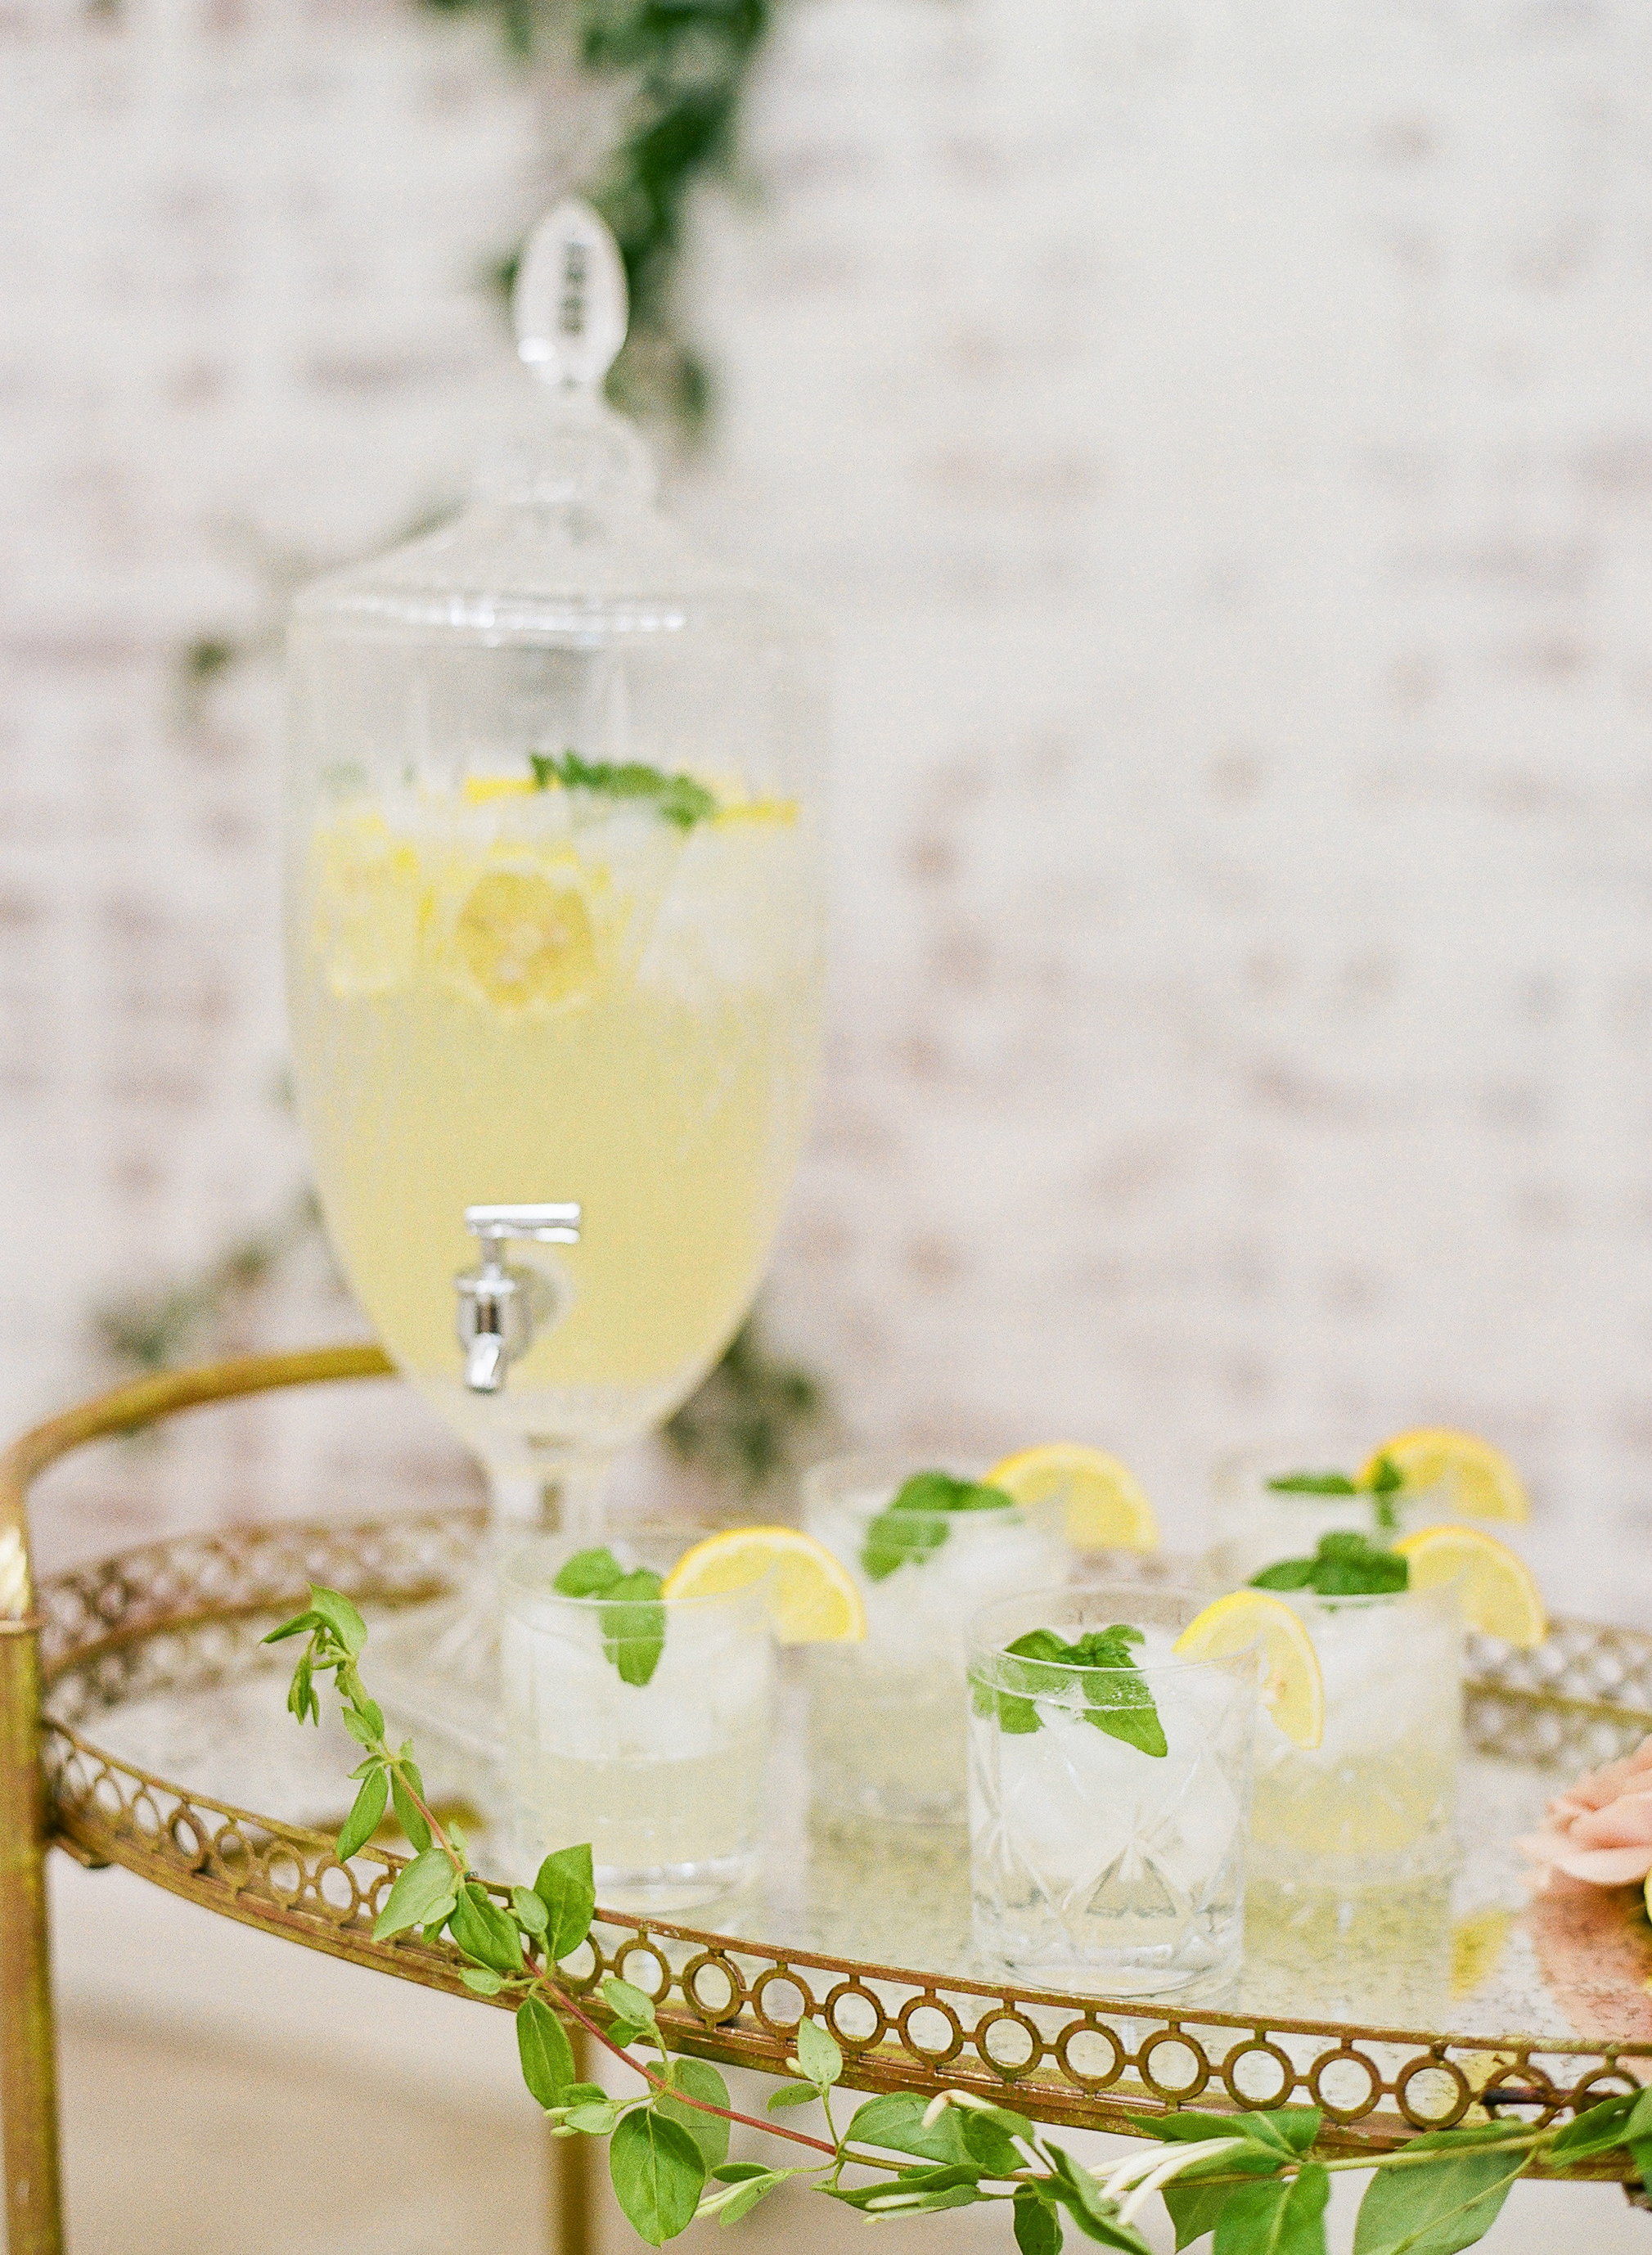 LemonSpringStyledShoot-52.jpg